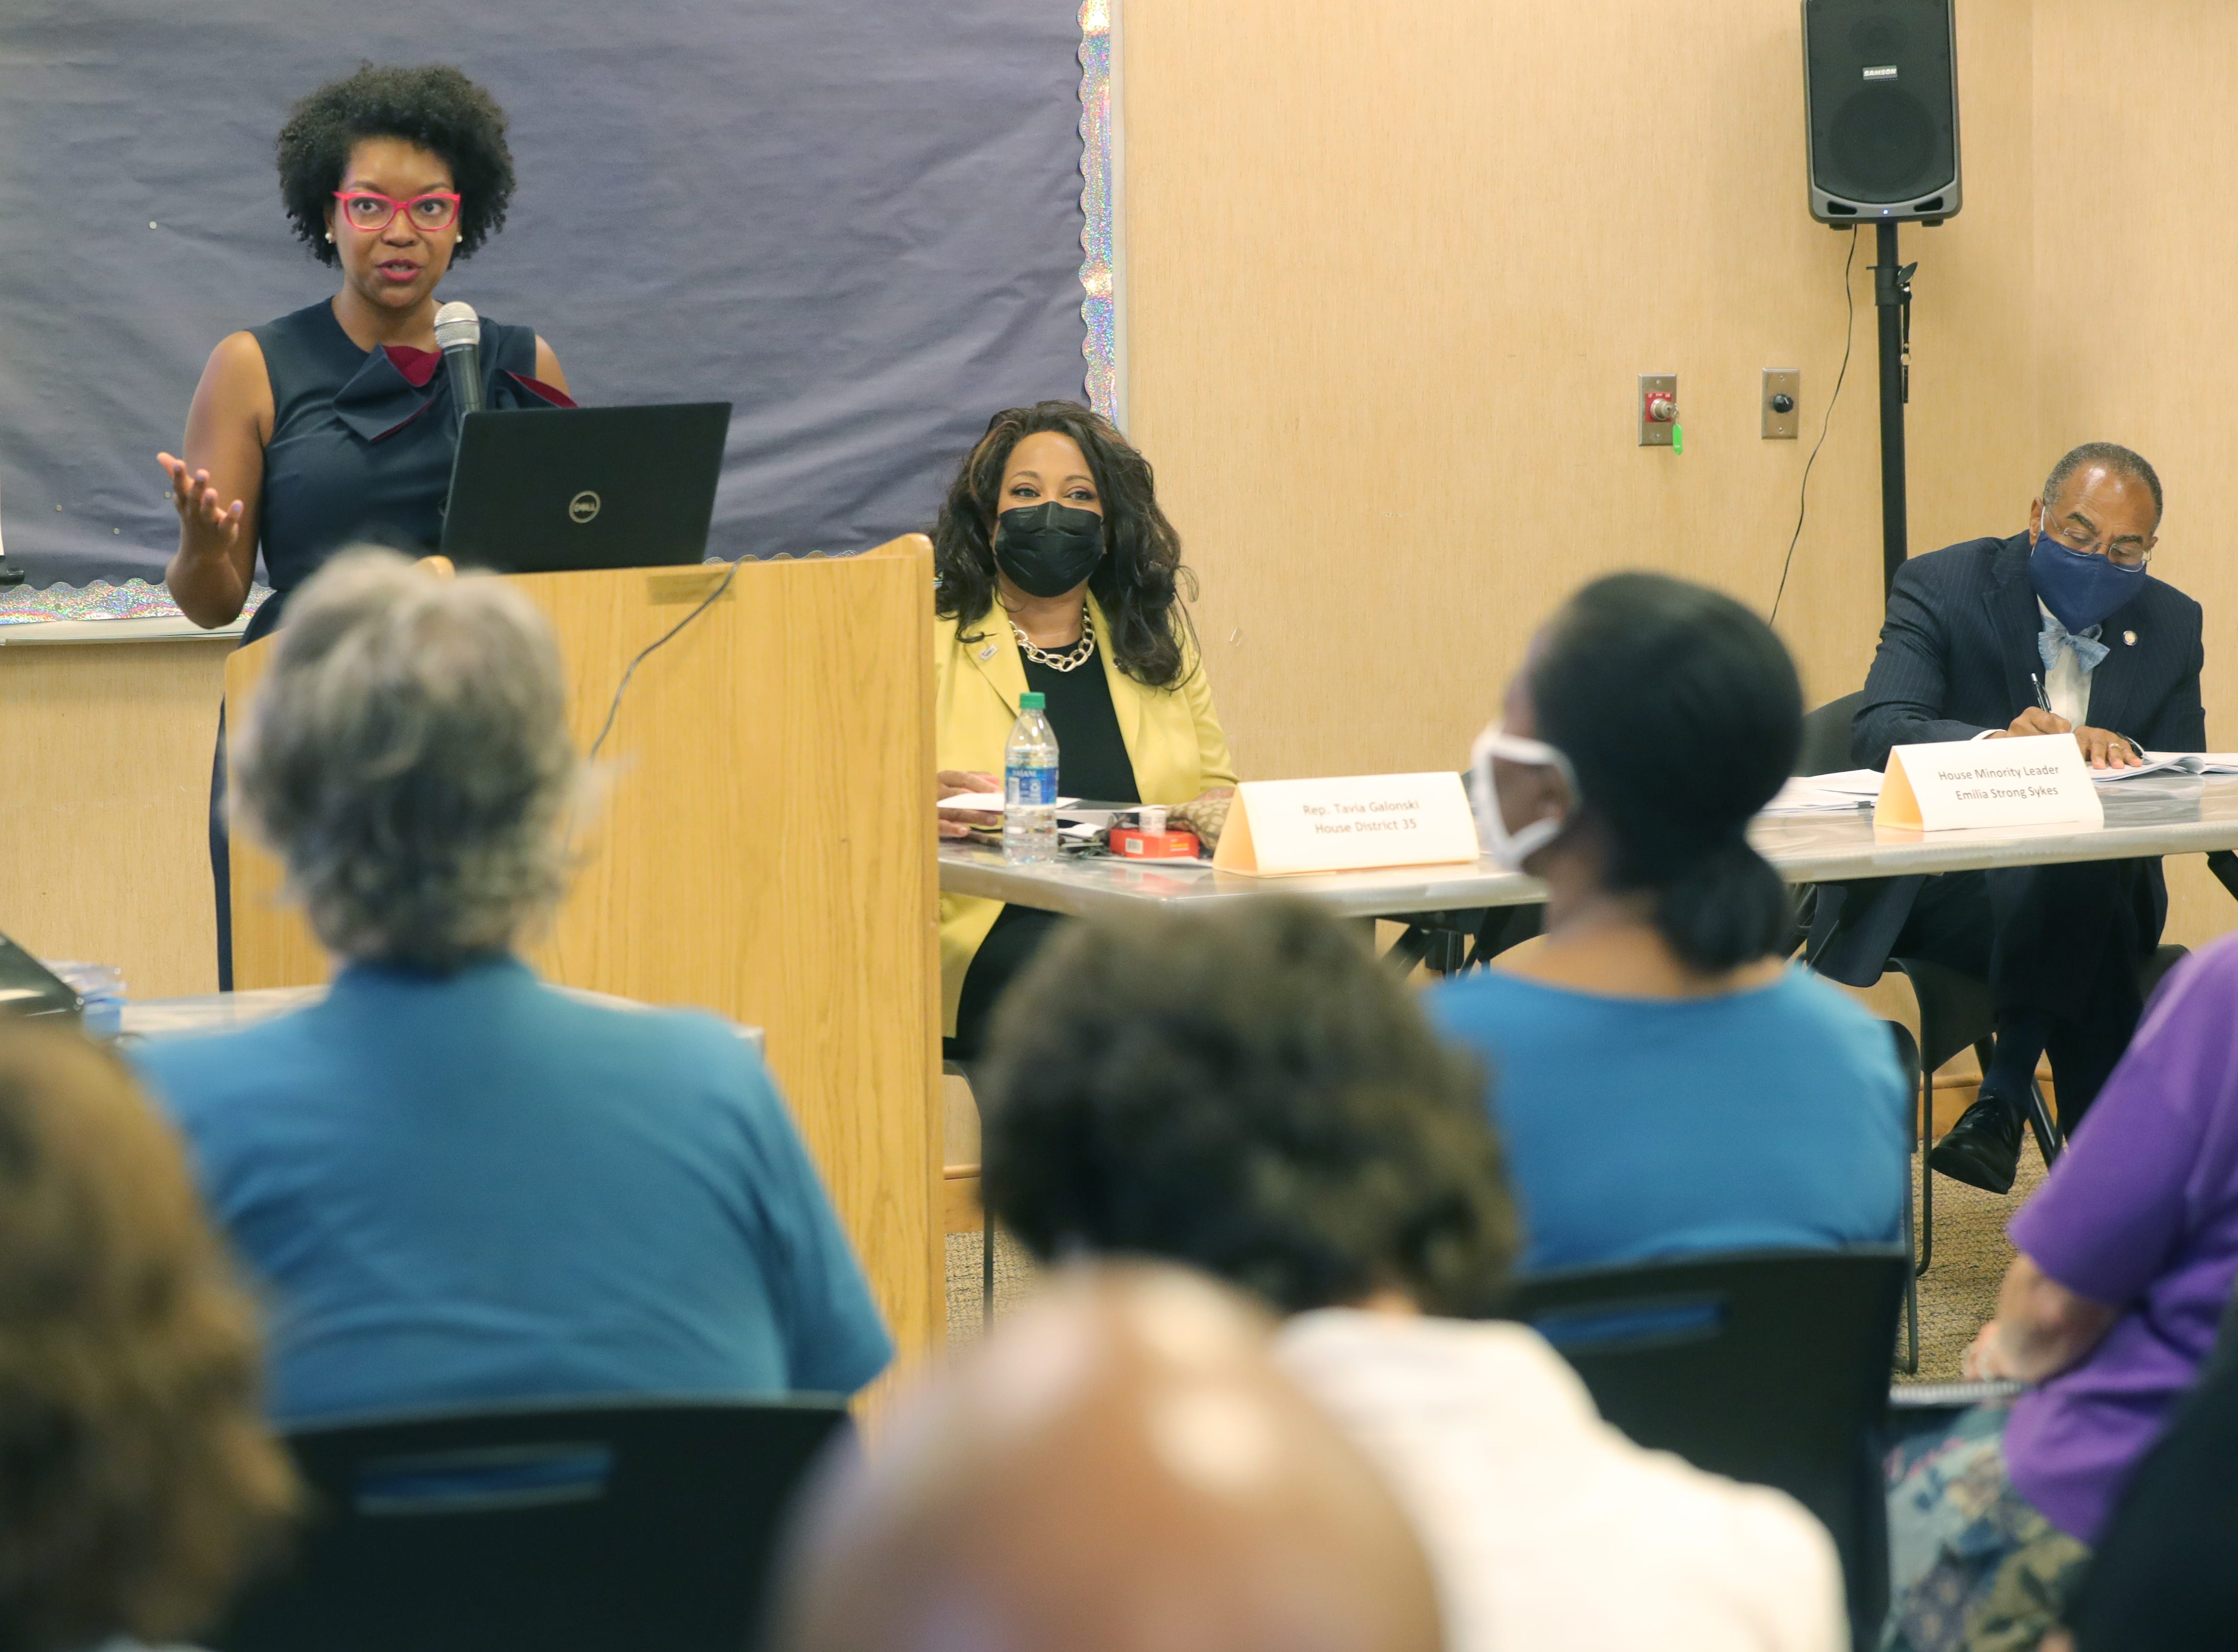 Ohio House Minority Leader Emilia Sykes, left, hosts a town hall with state Rep. Tavia Galonski, and Sykes' father, state Sen. Vernon Sykes, on Aug. 23 at the Maple Valley Library in Akron.